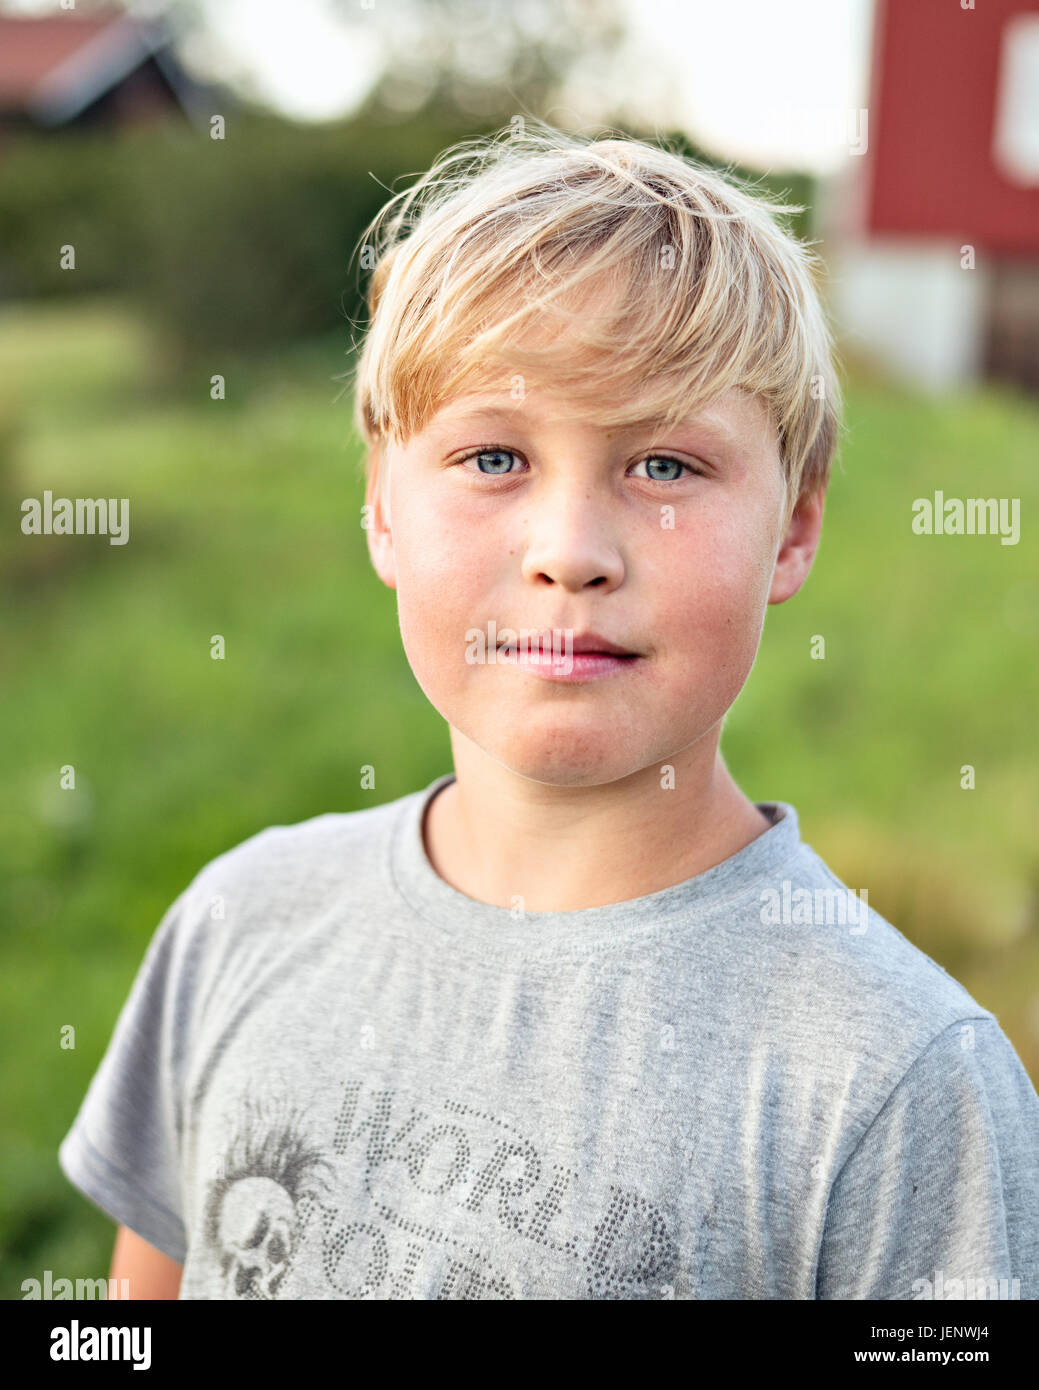 Portrait of boy - Stock Image